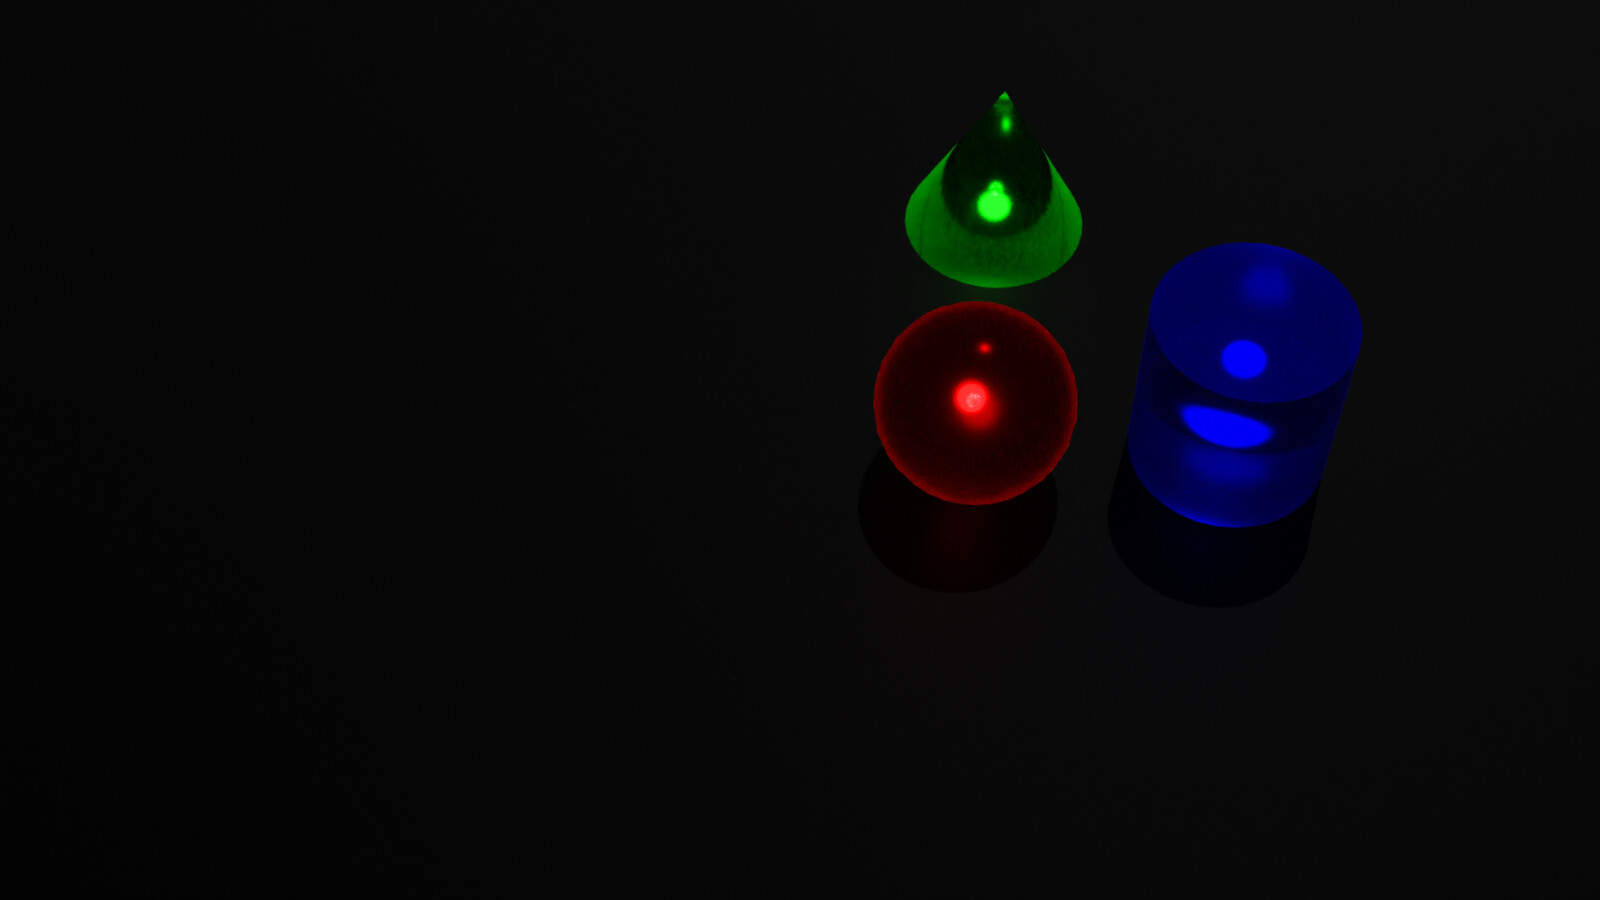 Normal cycle render in Blender